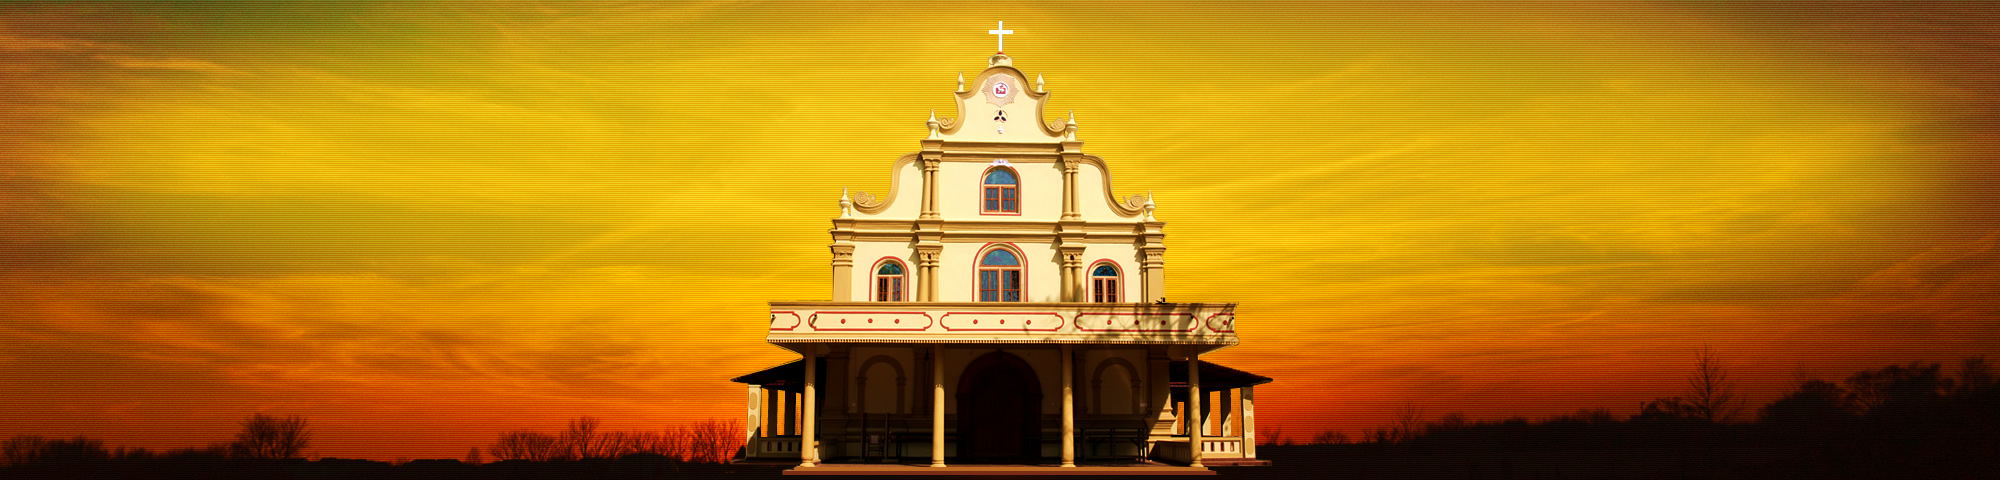 vaikom forane church